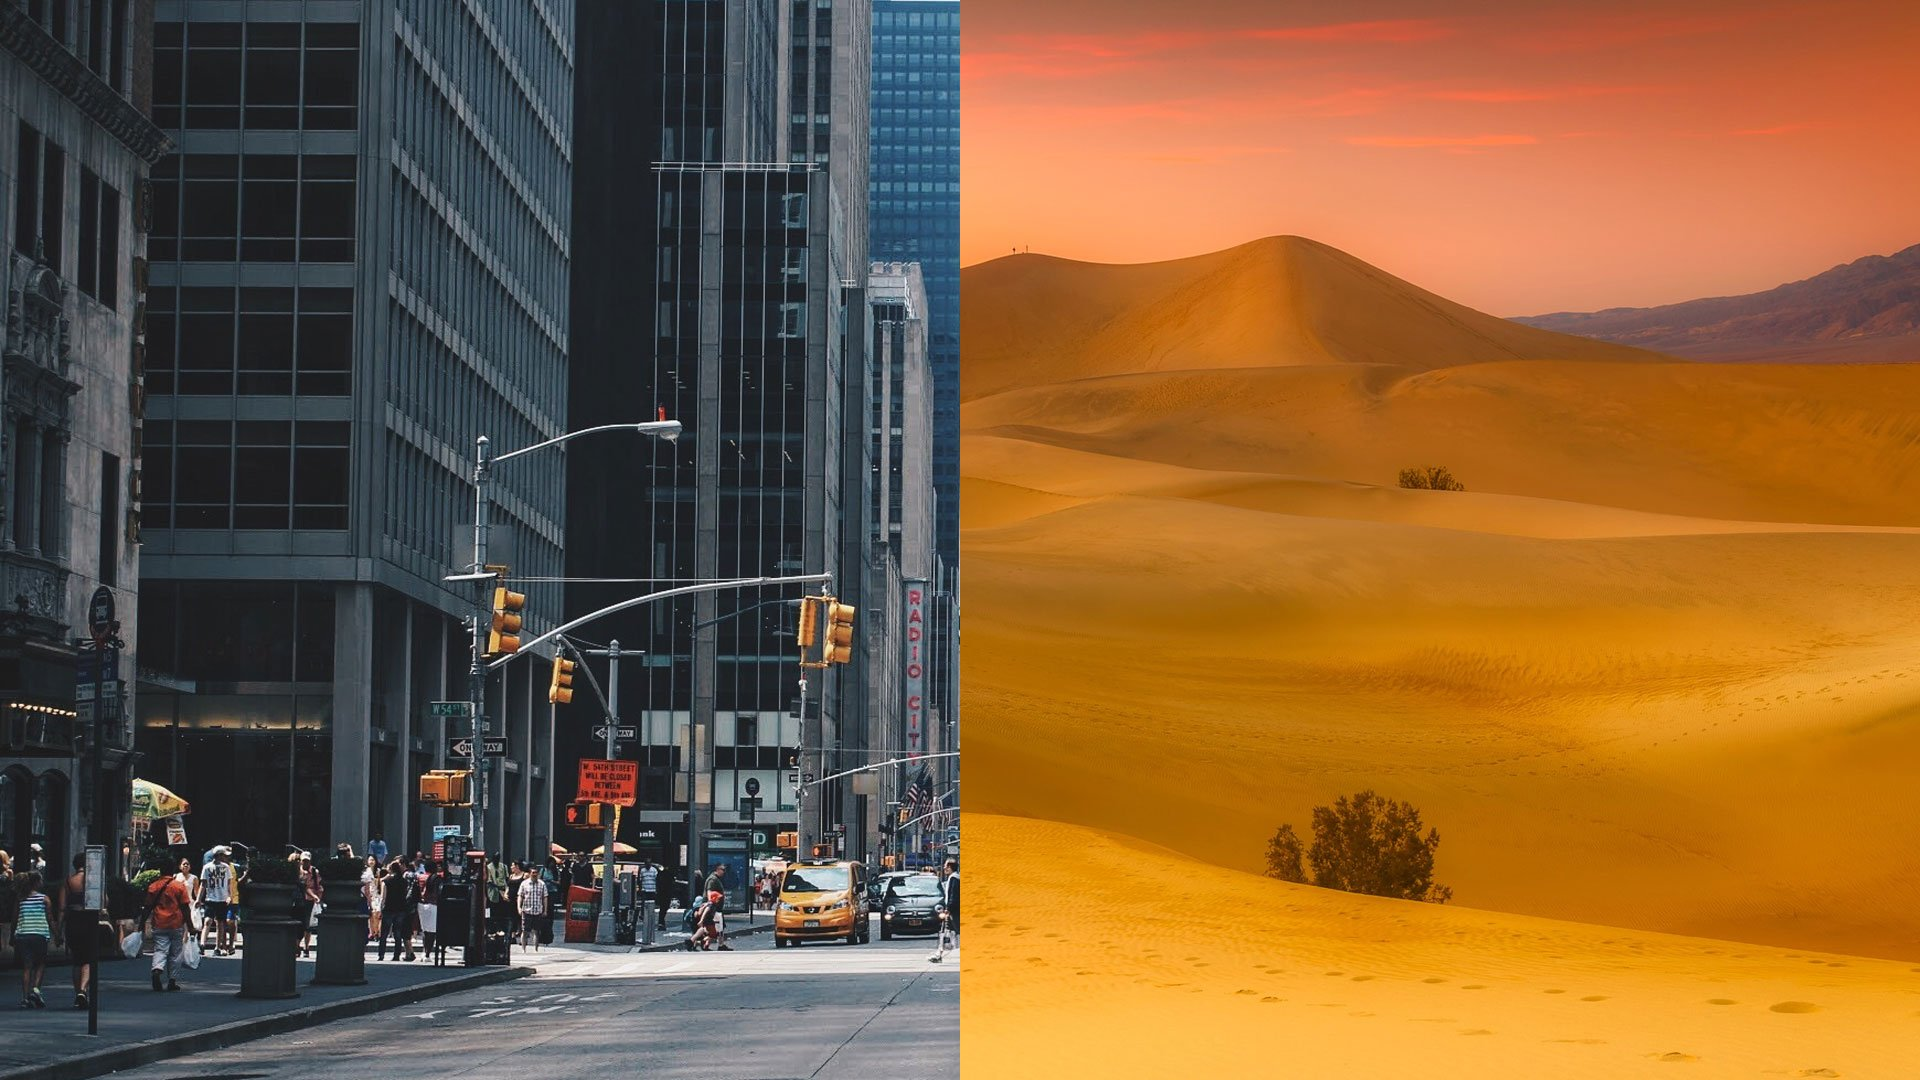 Can You Leave A City For A Desolate Place To Achieve Inner Peace?